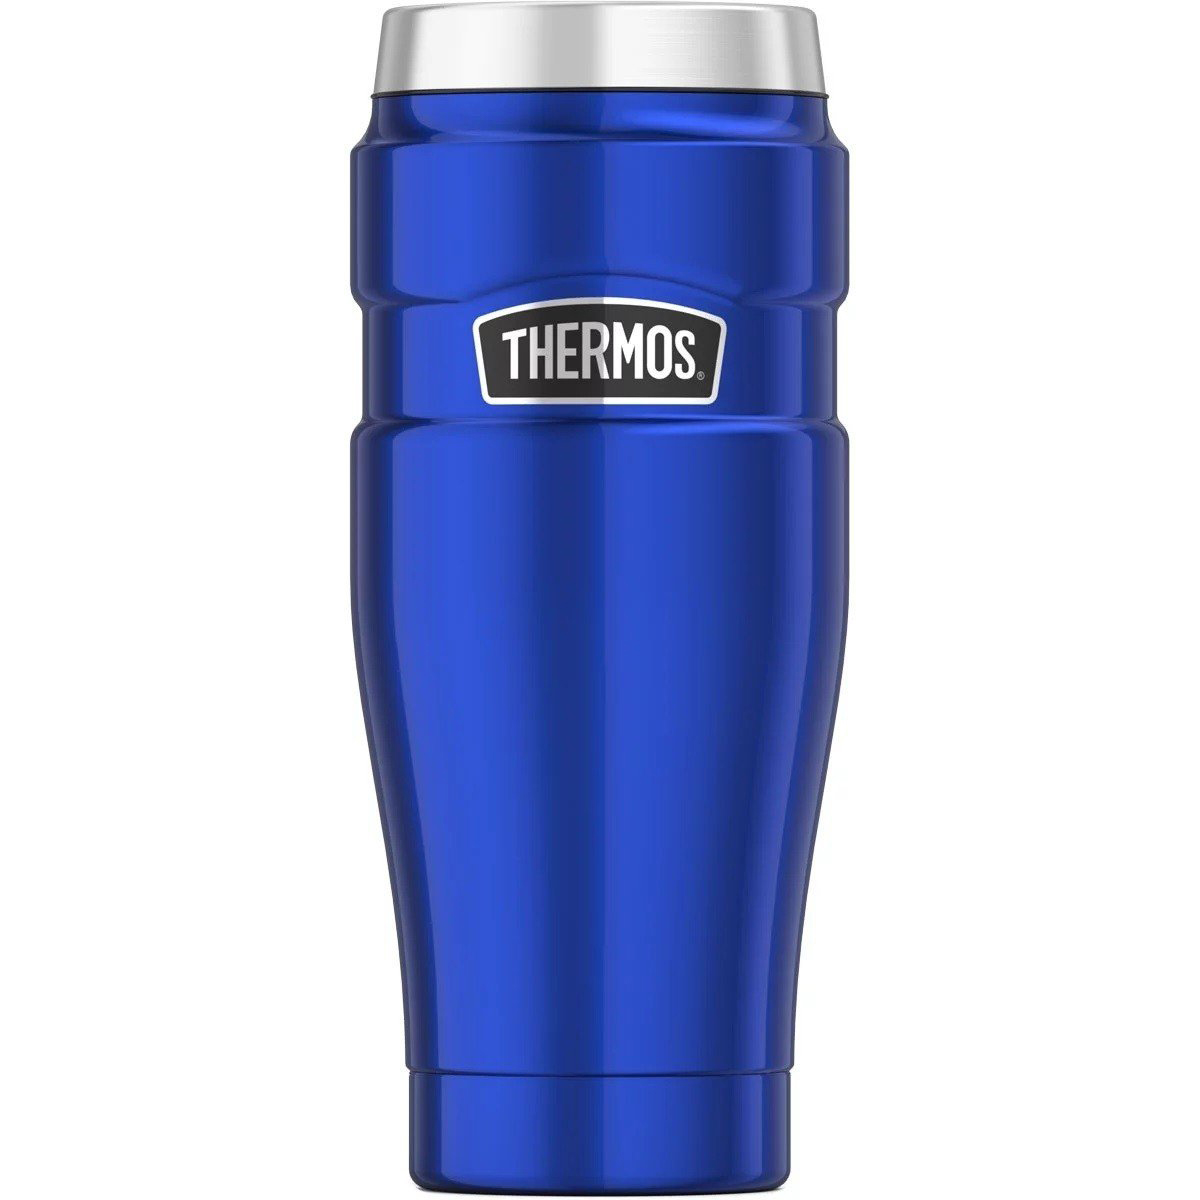 Cranberry Thermos Stainless King 16-Ounce Travel Tumbler